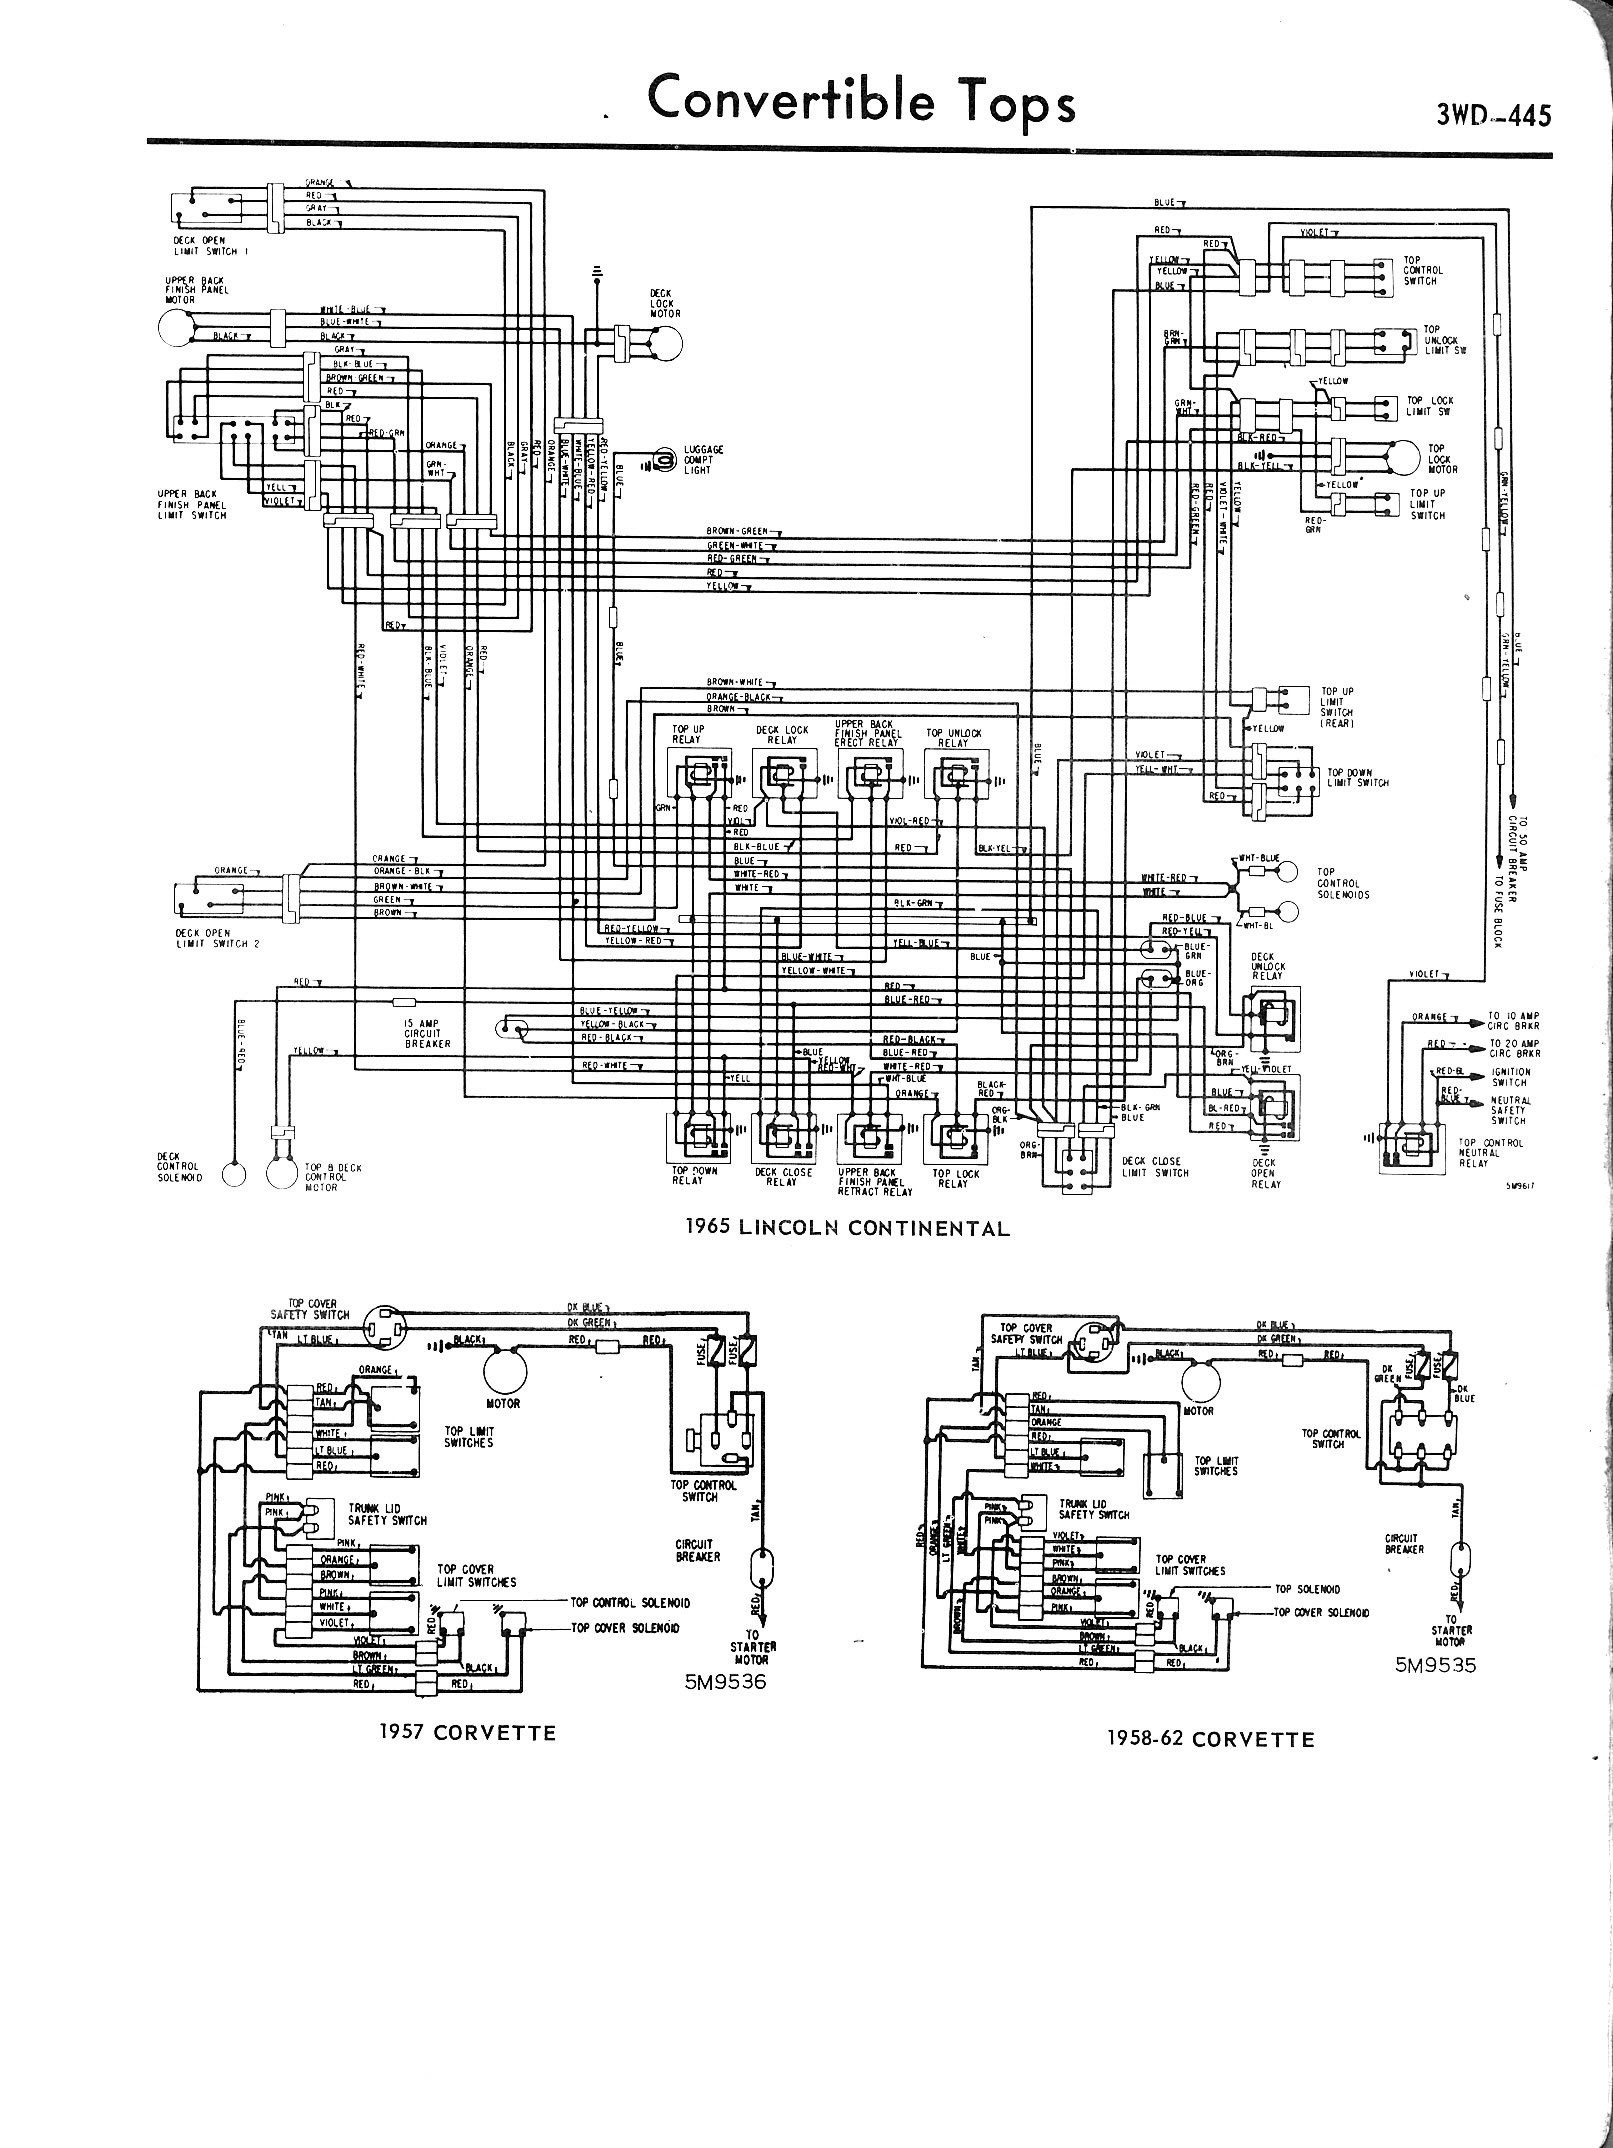 Hose Routing 78 Cj7 7190 furthermore Showthread as well Chevy 350 Ignition Coil Wiring Diagram also Showthread moreover Chevy Ignition Switch Schematic Wiring Diagrams. on 57 chevy starter wiring diagram